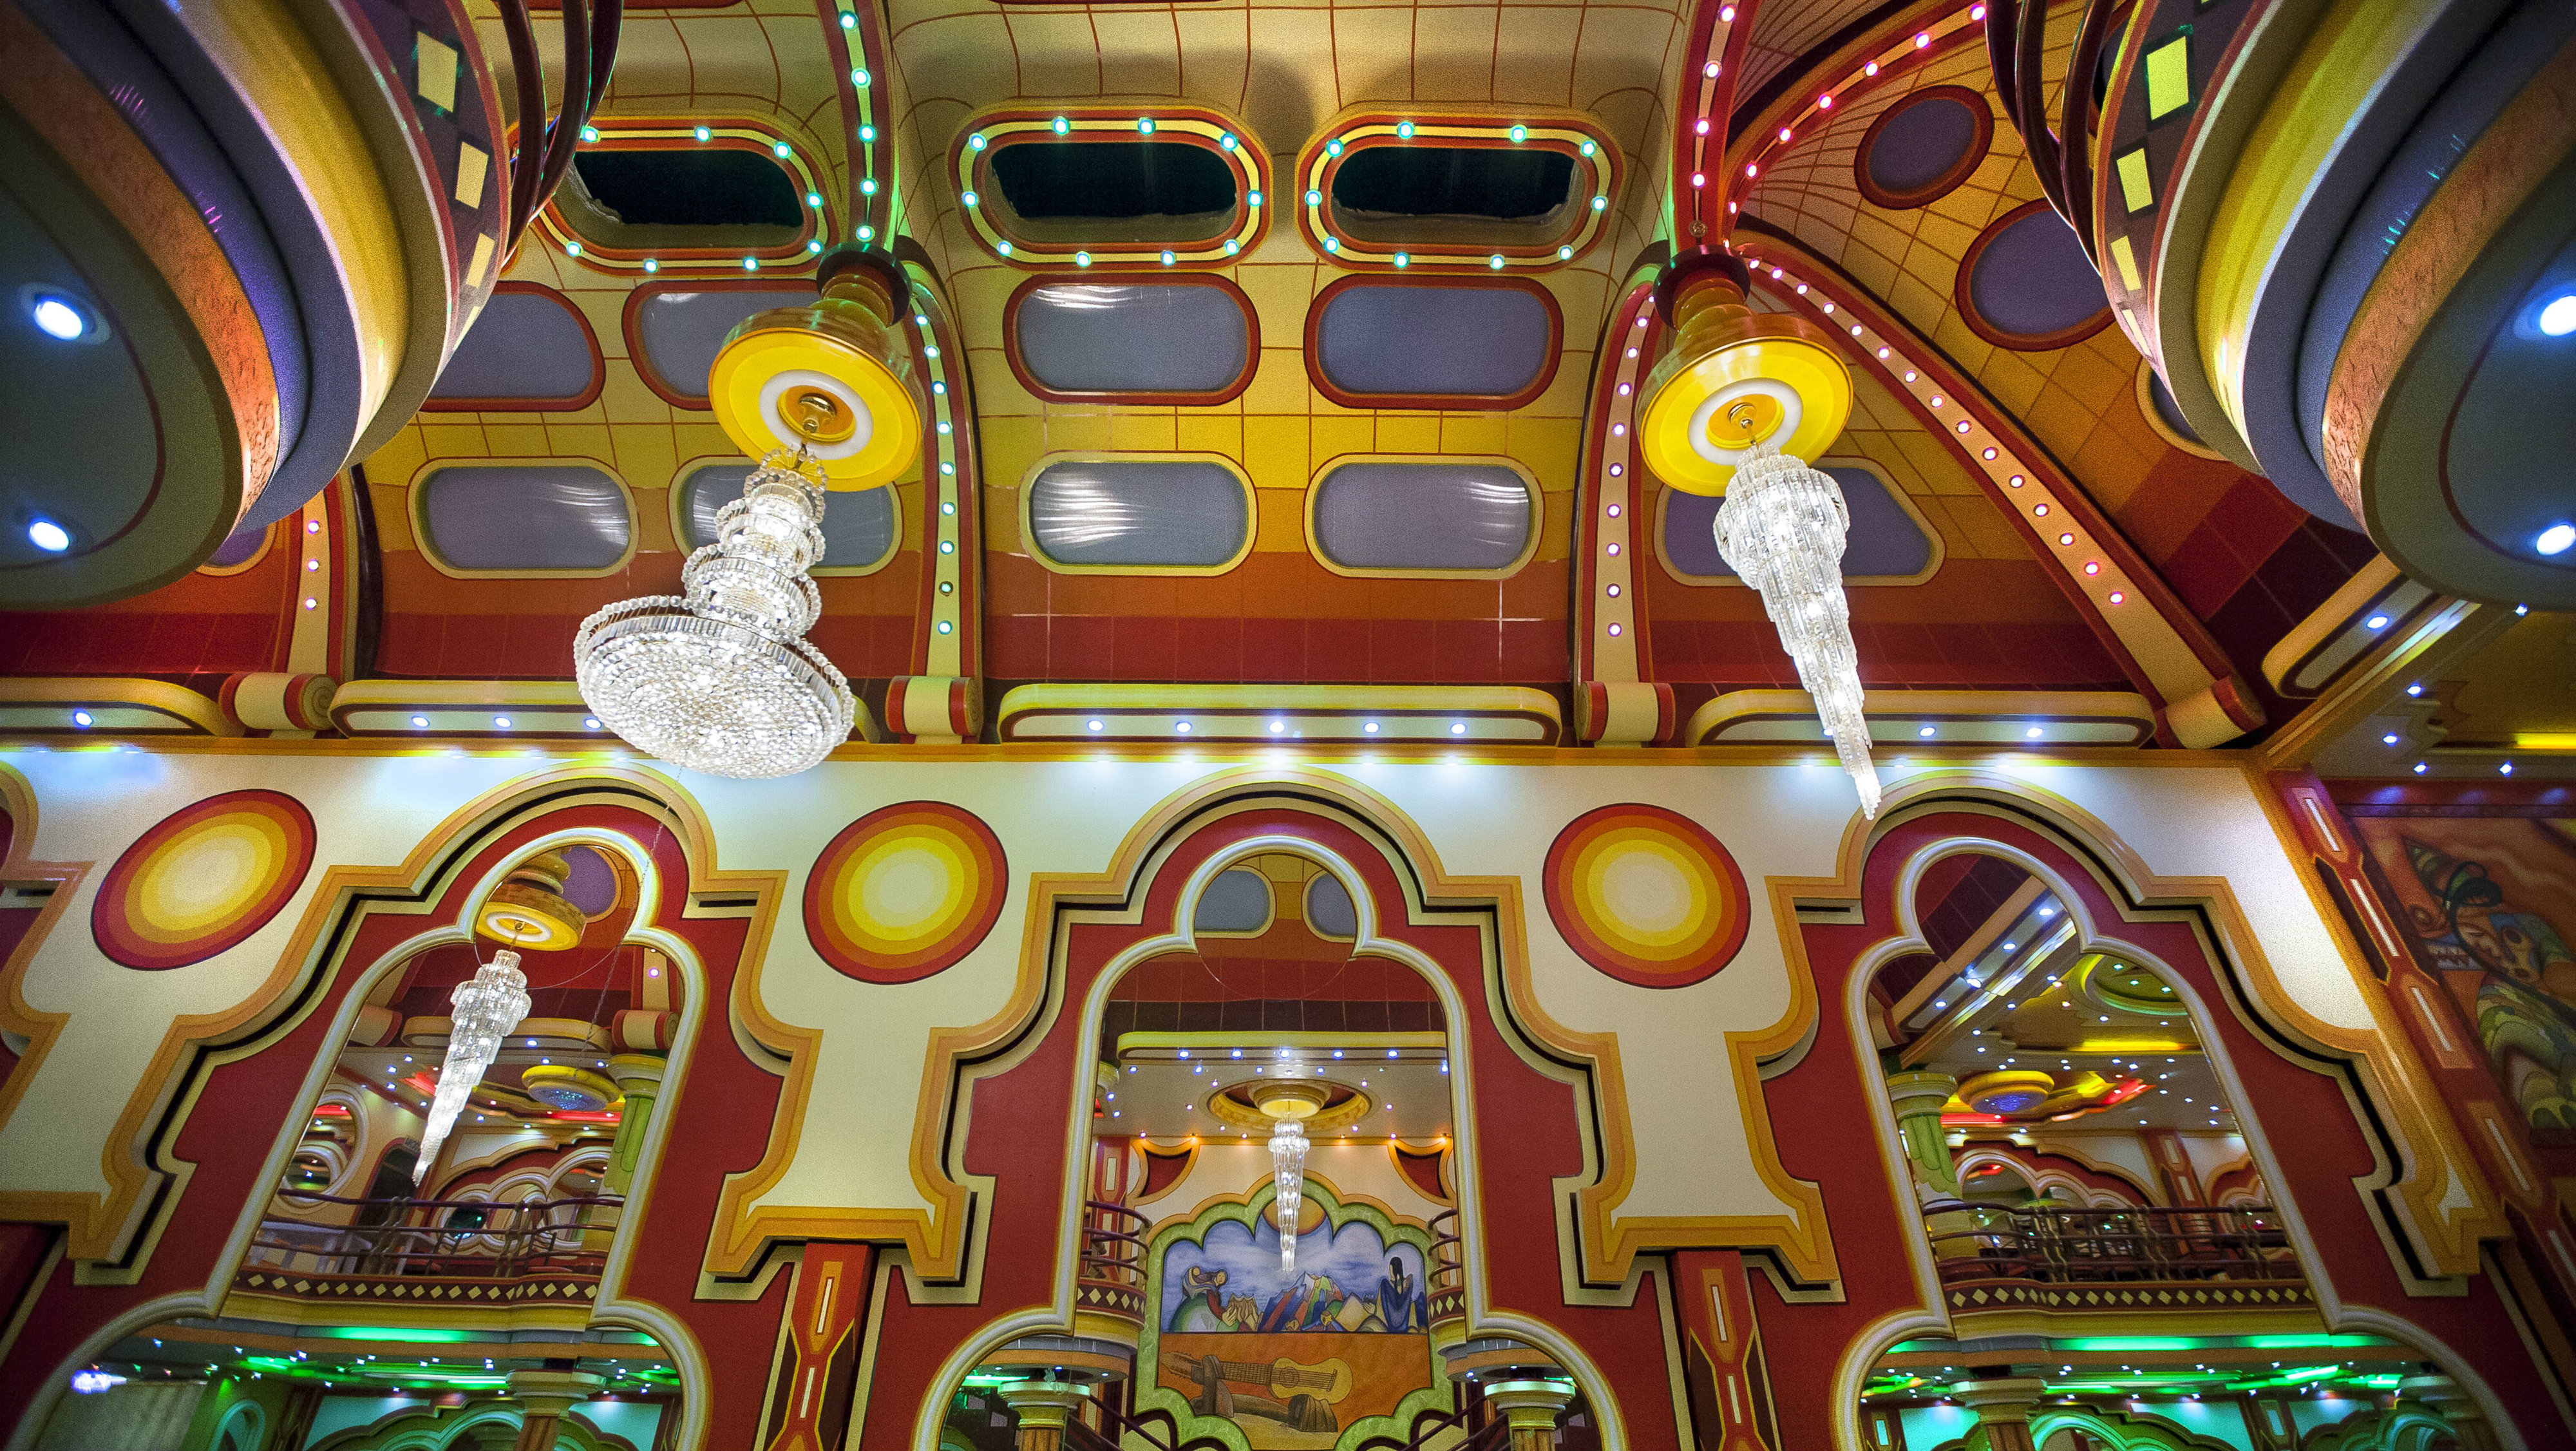 Spaceship architecture by self-taught Bolivian Architect, Freddy Mamani Silvestre.